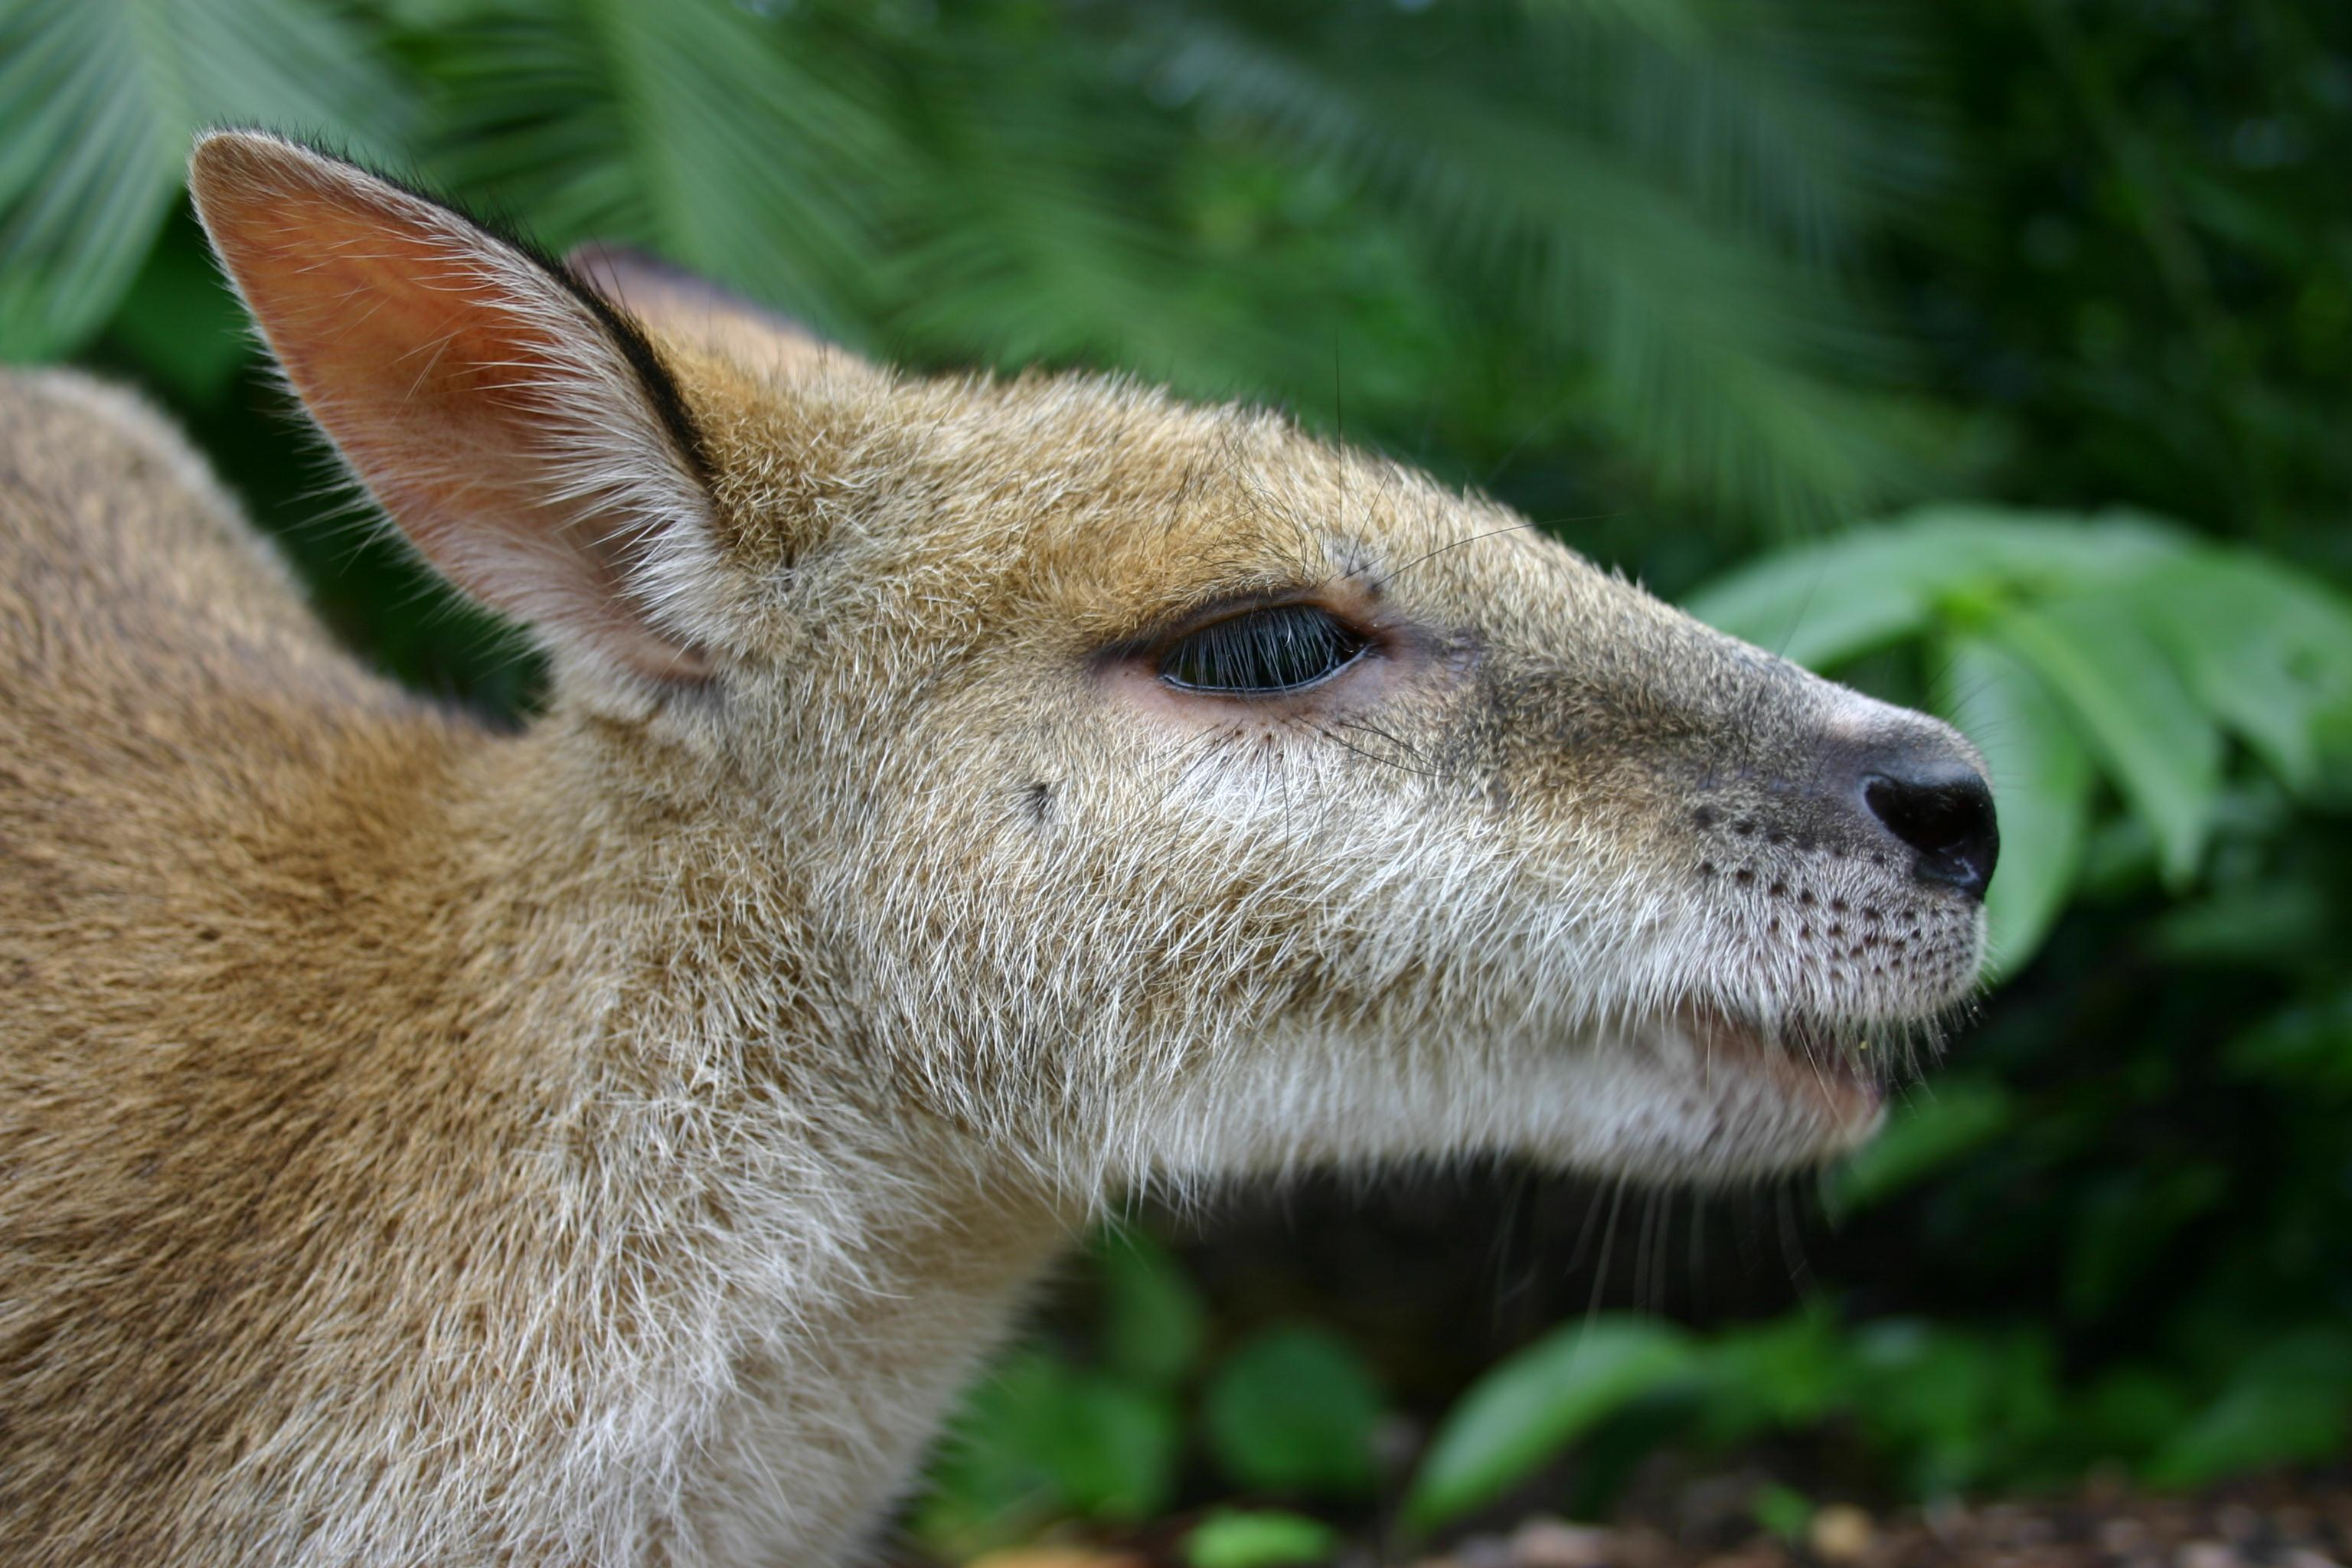 Agile wallaby close up